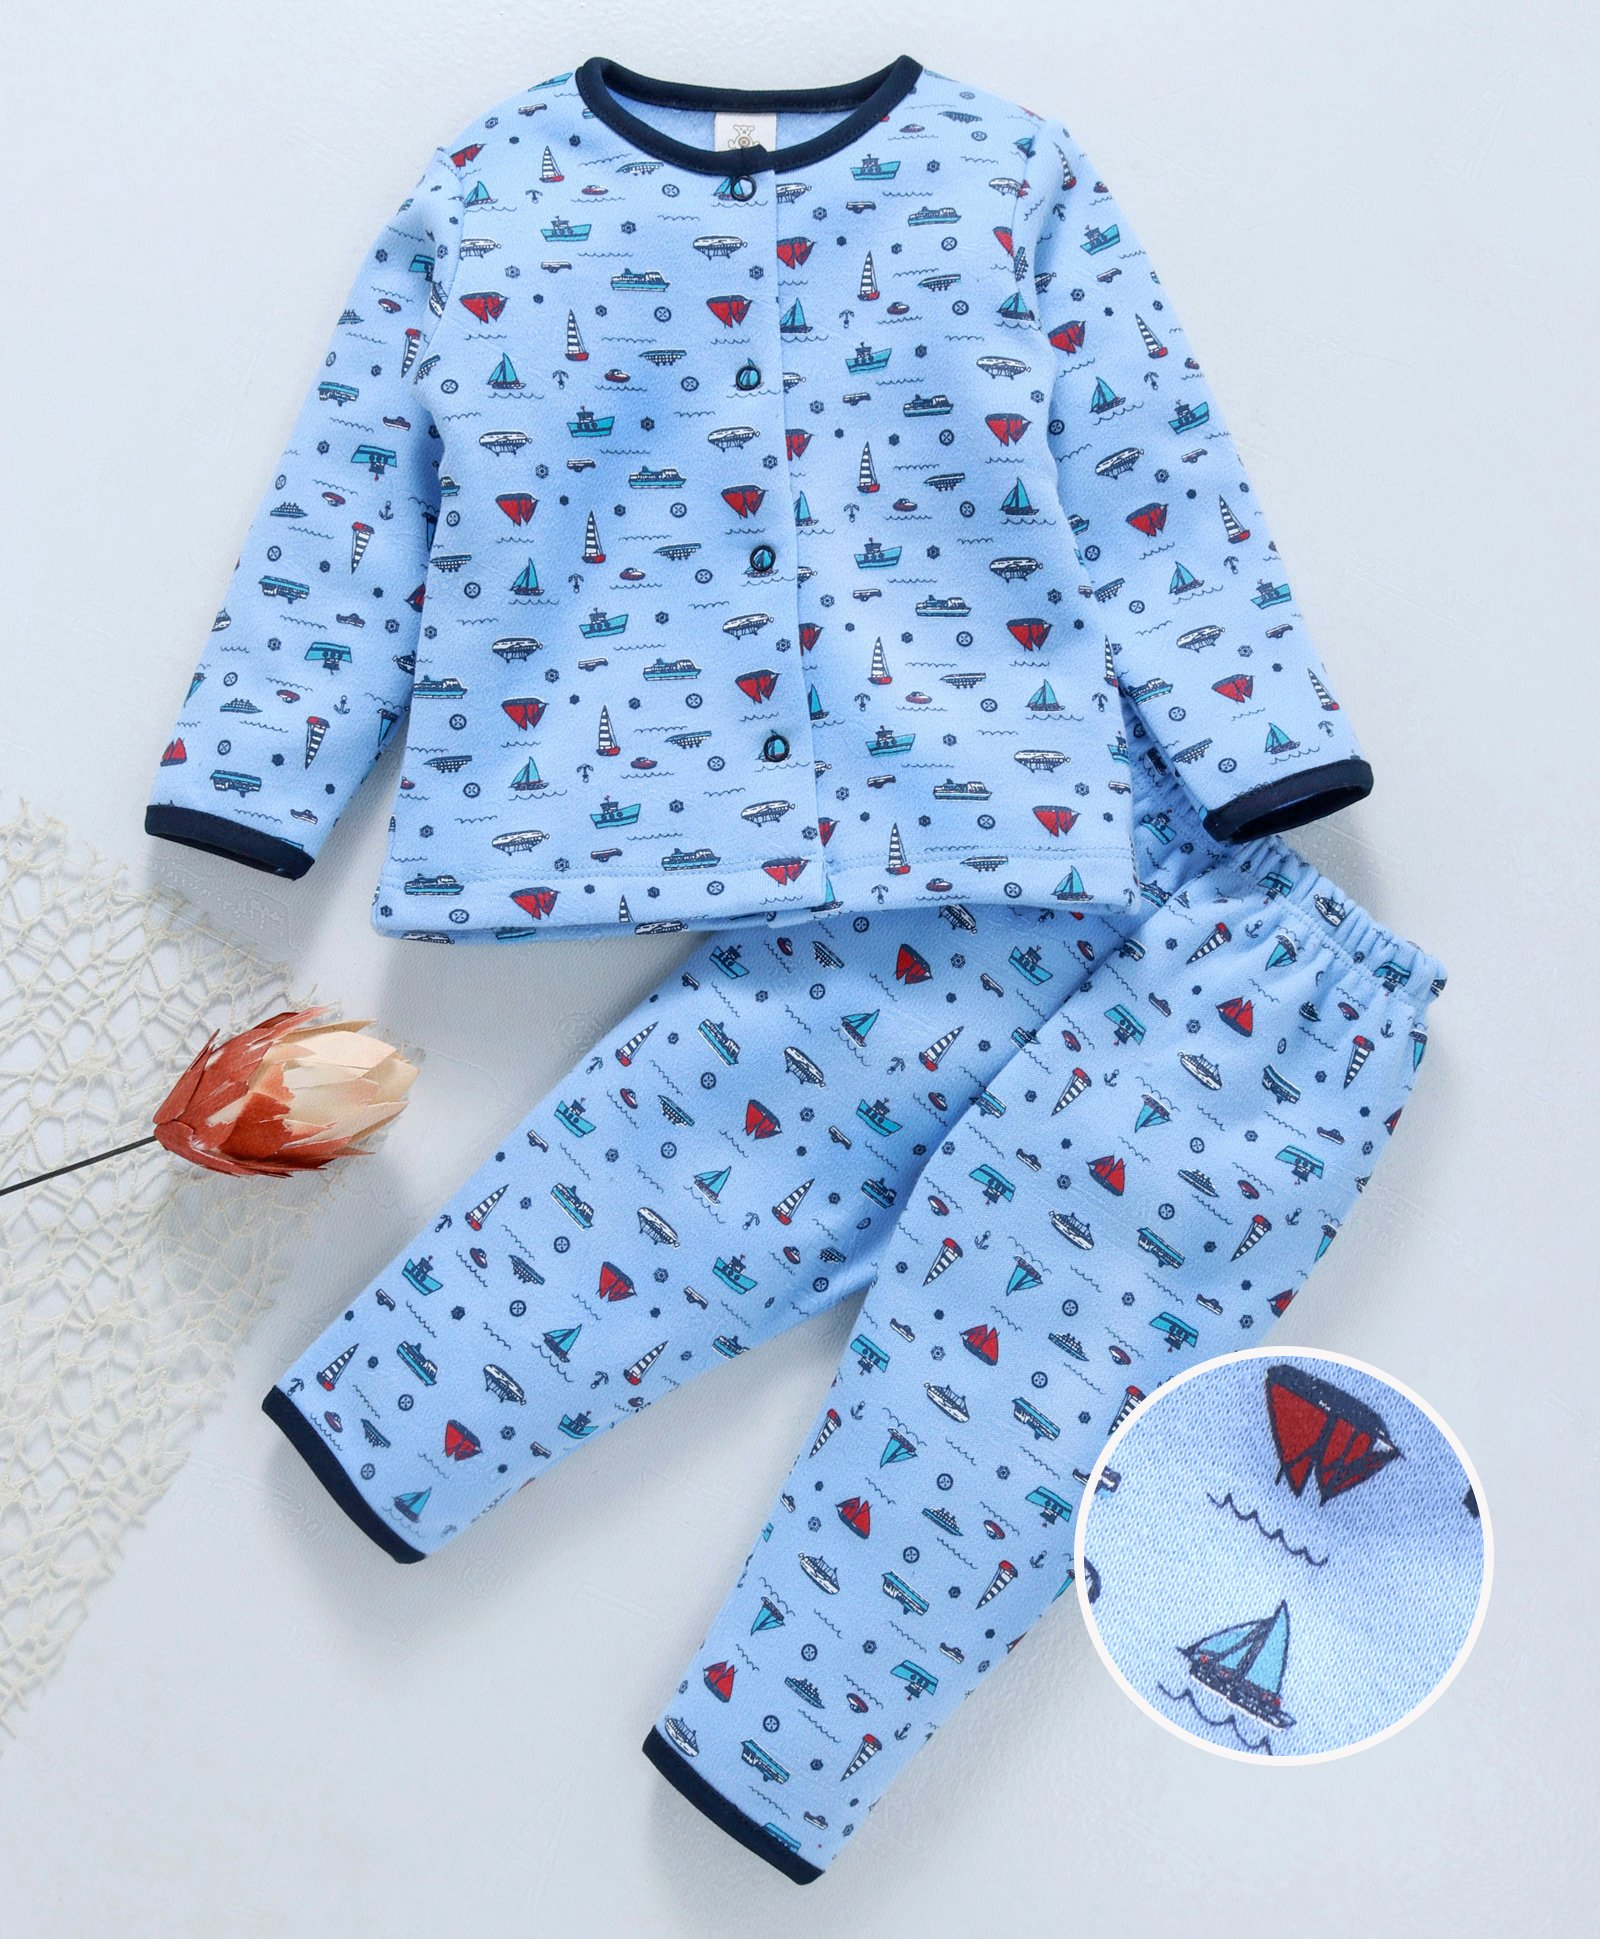 657e56d84 Buy Baby Naturelle   Me Full Sleeves Night Suit Boat Print Blue for ...